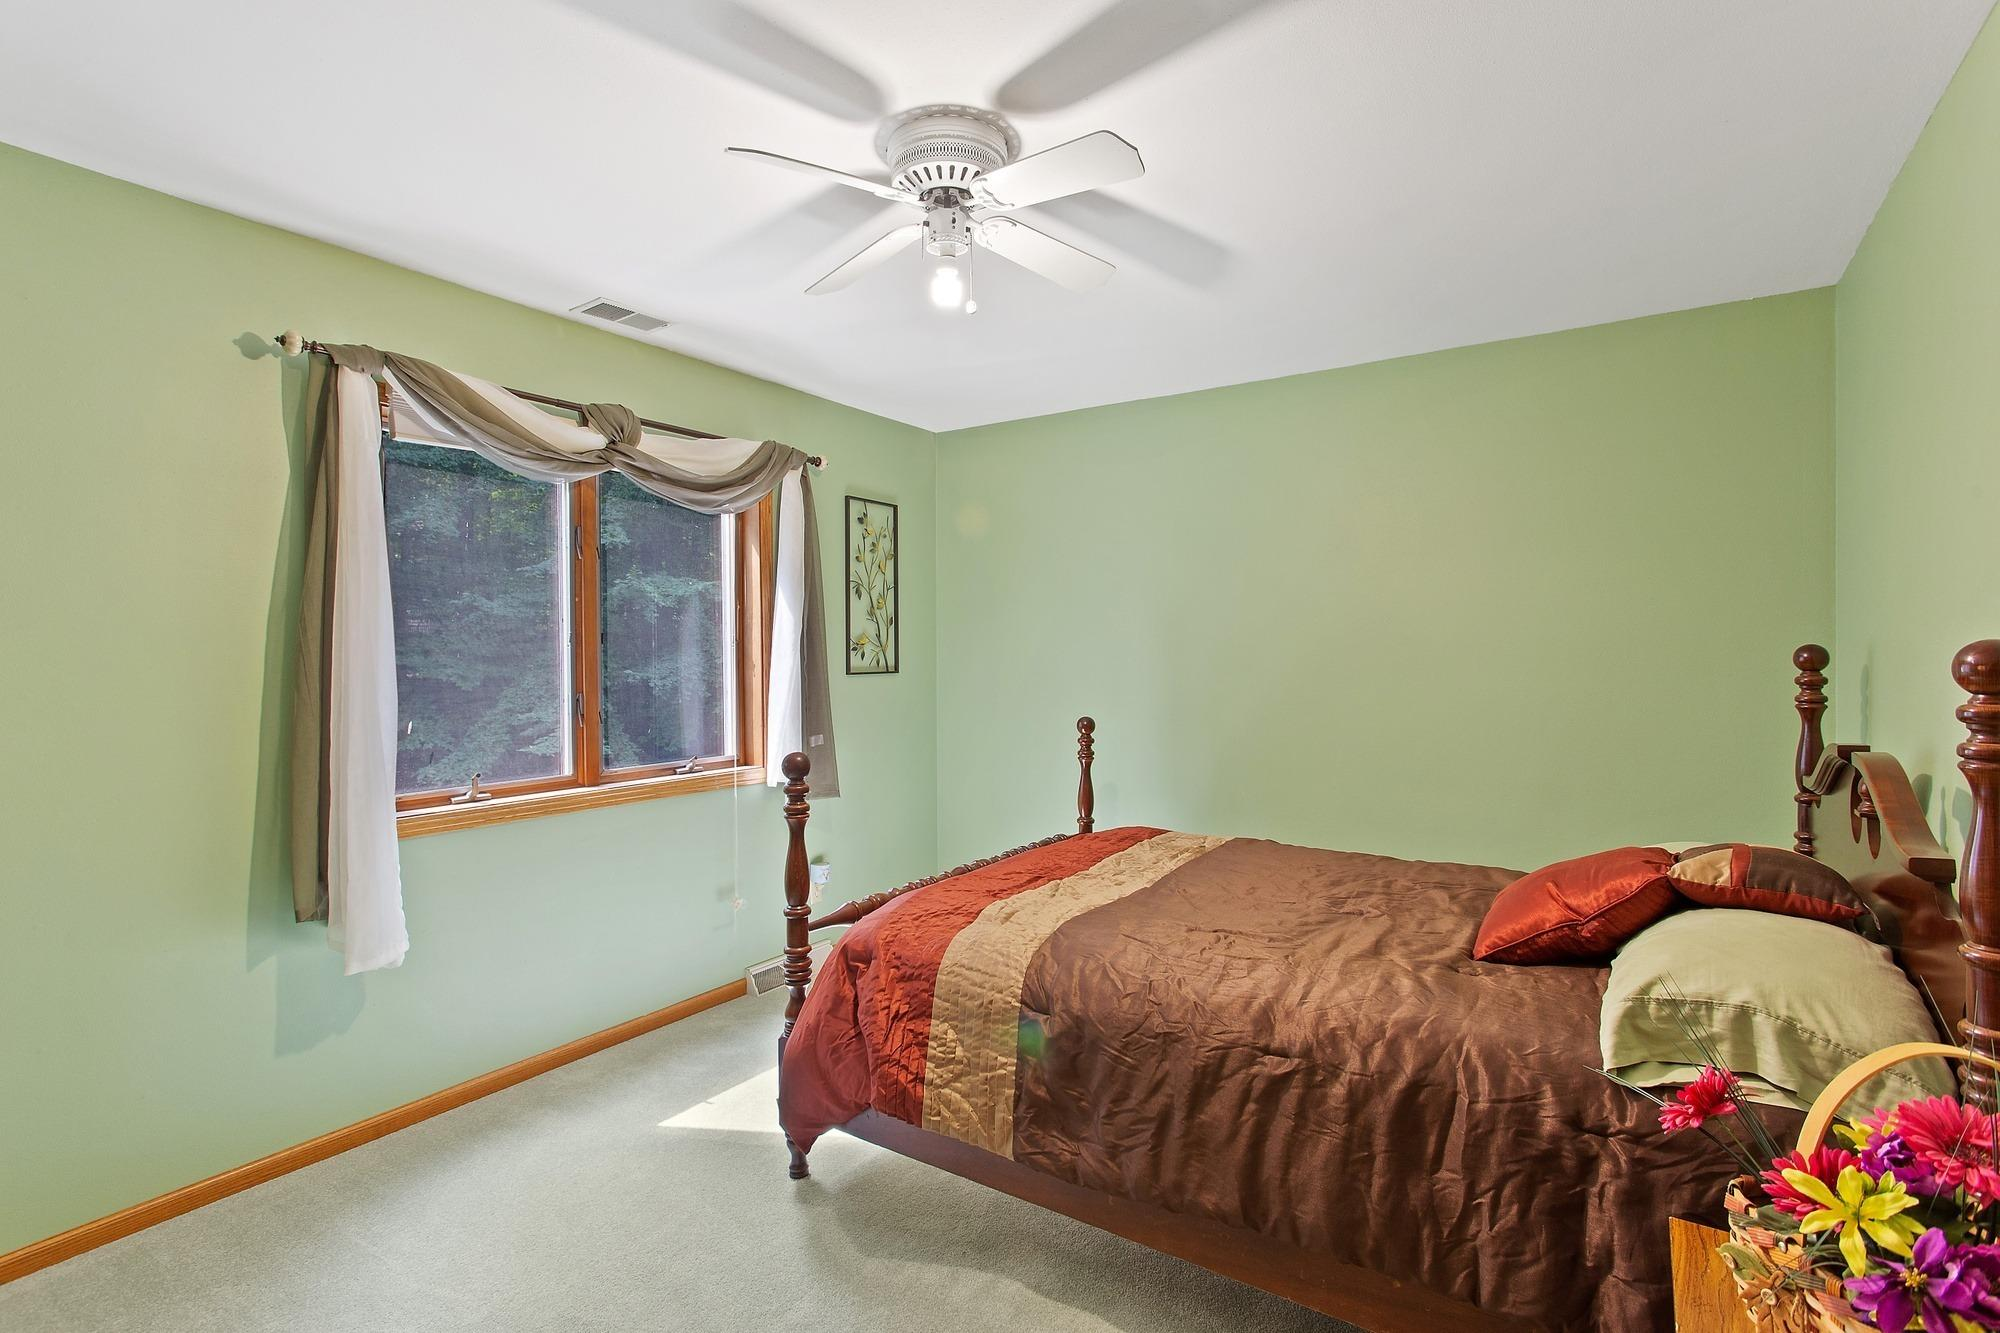 2192 Maple Rd, Grafton, Wisconsin 53024, 3 Bedrooms Bedrooms, ,2 BathroomsBathrooms,Single-family,For Sale,Maple Rd,1706245